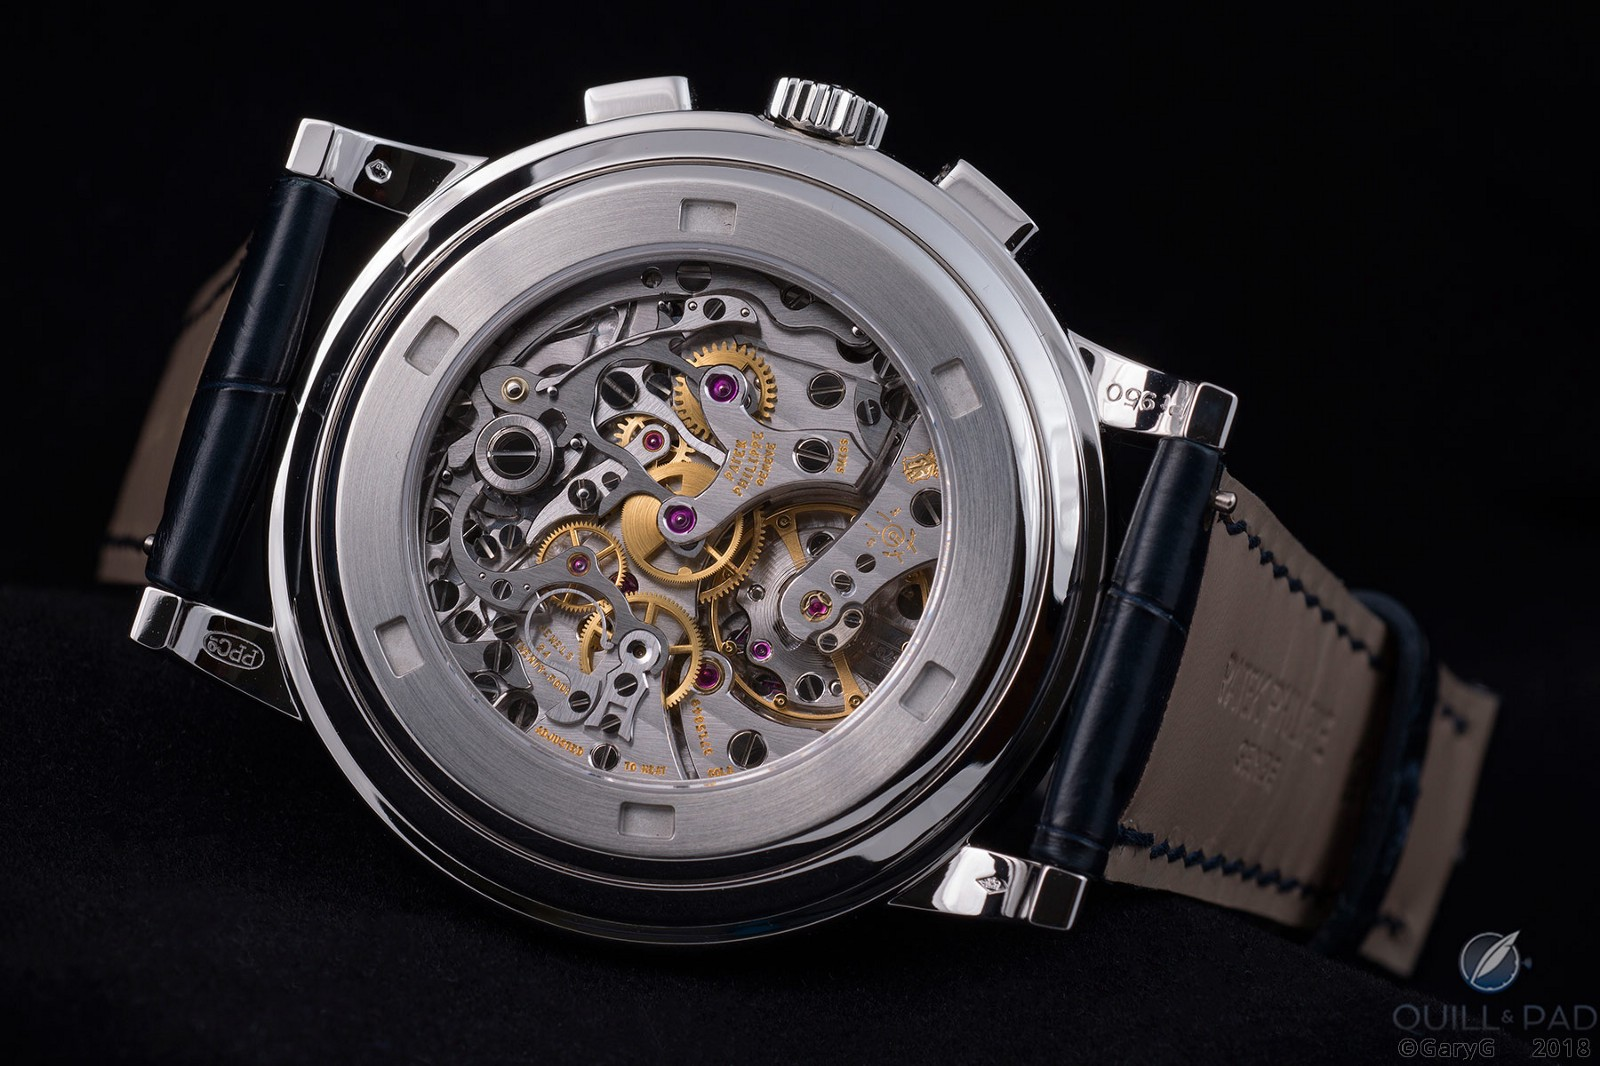 Patek Philippe Caliber CH 27-70 in Reference 5070P